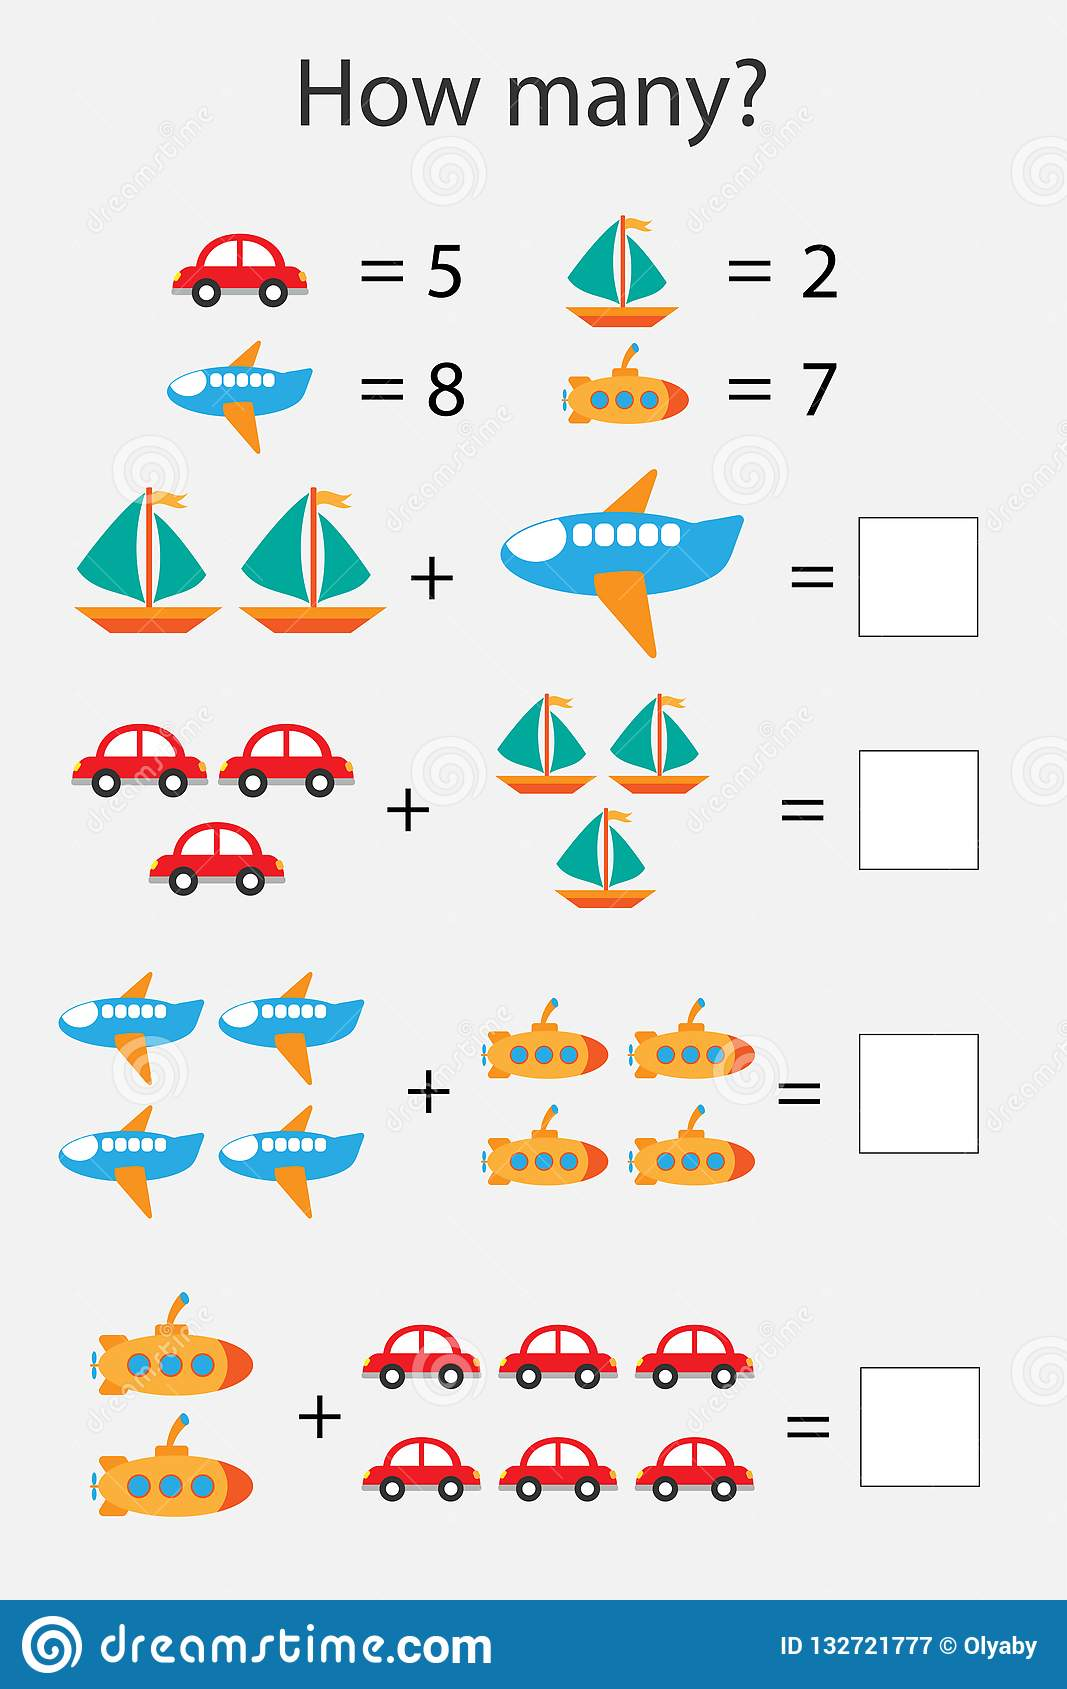 How Many Counting Game With Transport For Kids